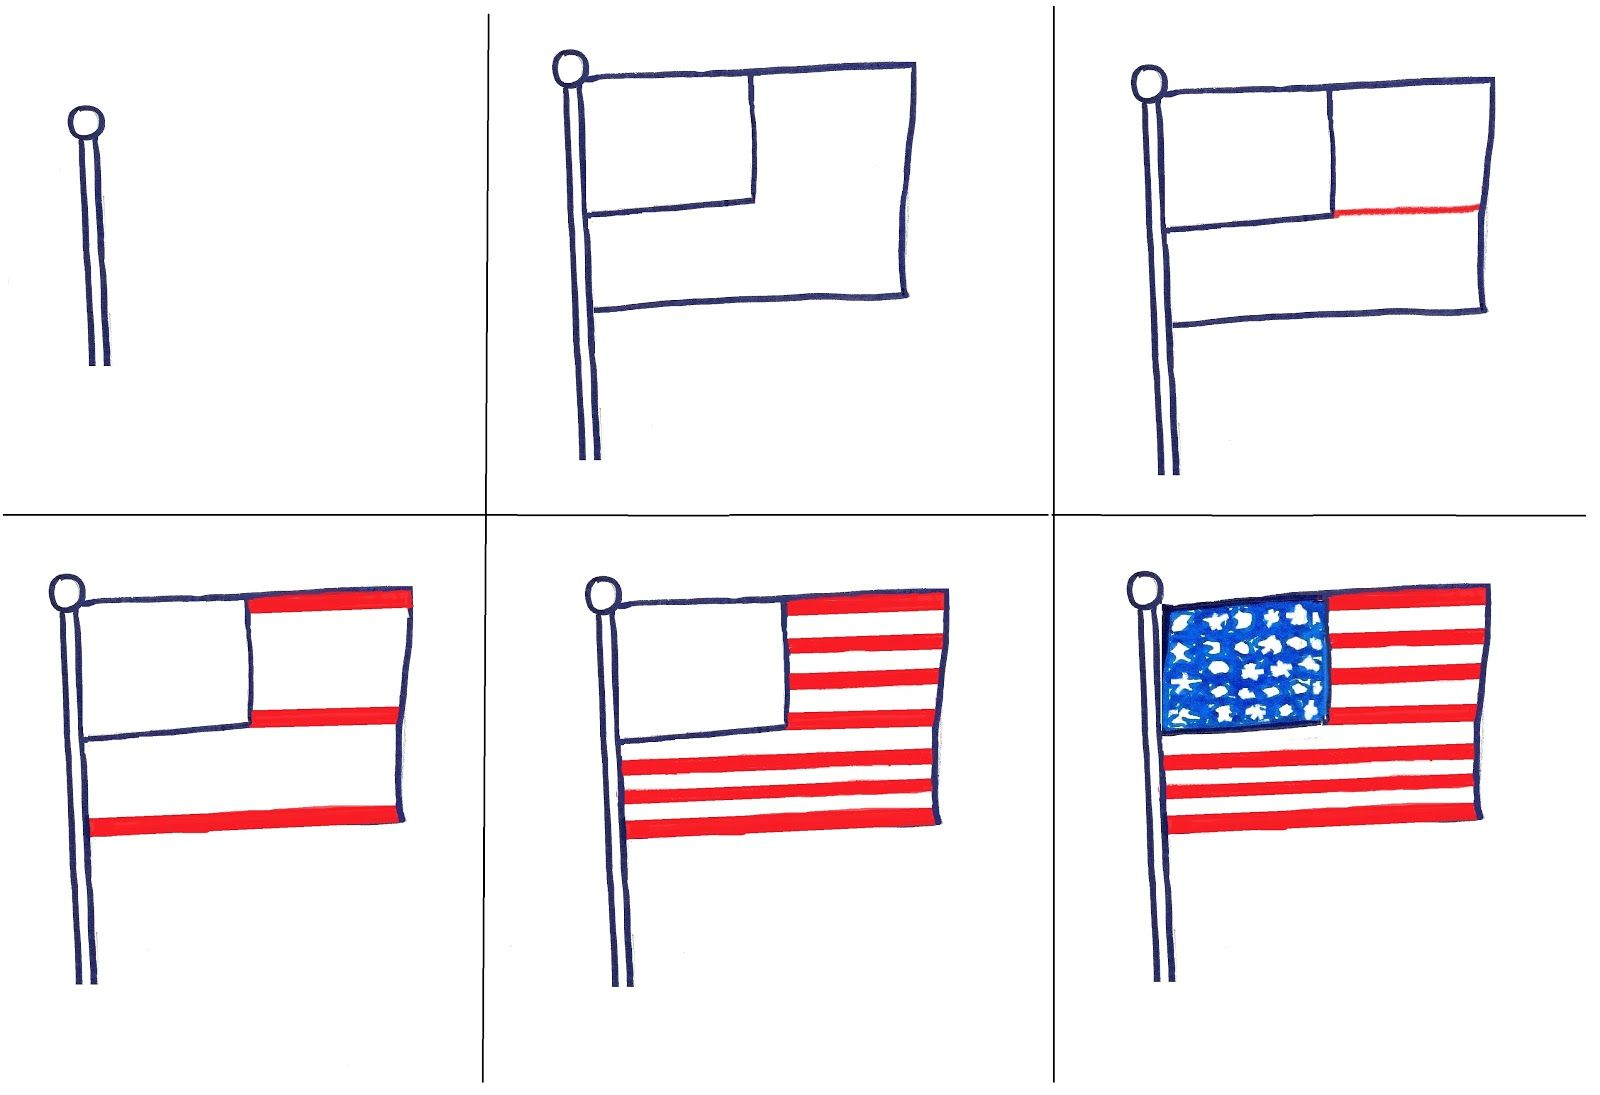 American Flag Worksheet For 1st Grade   Printable Worksheets and Activities  for Teachers [ 1095 x 1600 Pixel ]